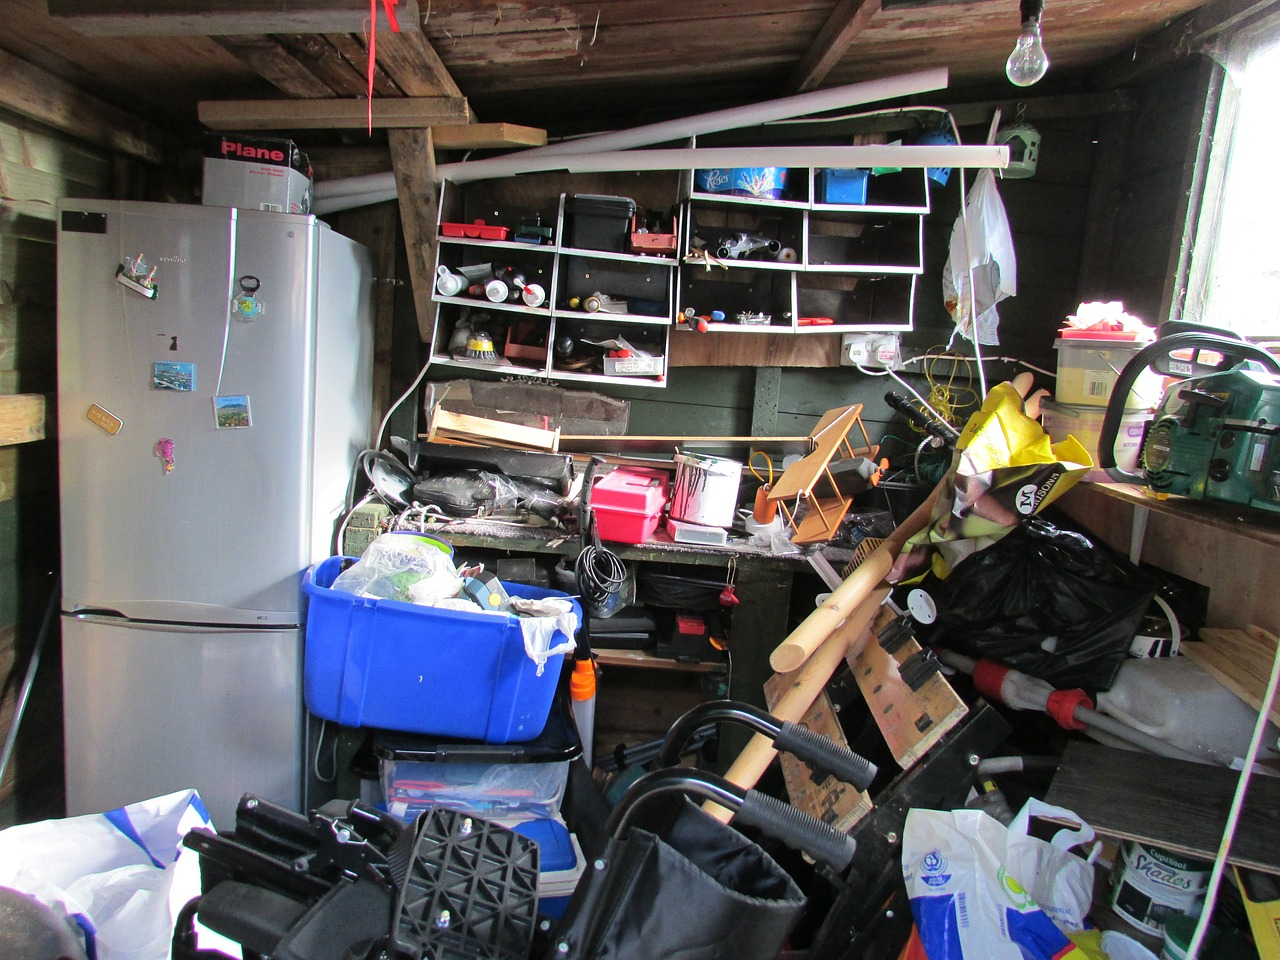 Cluttered storage room with no space.